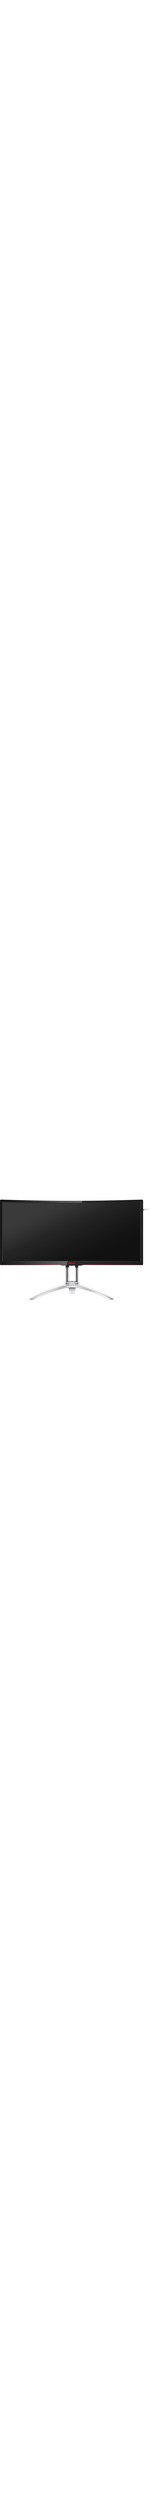 AOC AGON AG352UCG6 35And#34; WLED LCD Monitor - 21:9 - 4 ms GTG - 3440 x 1440